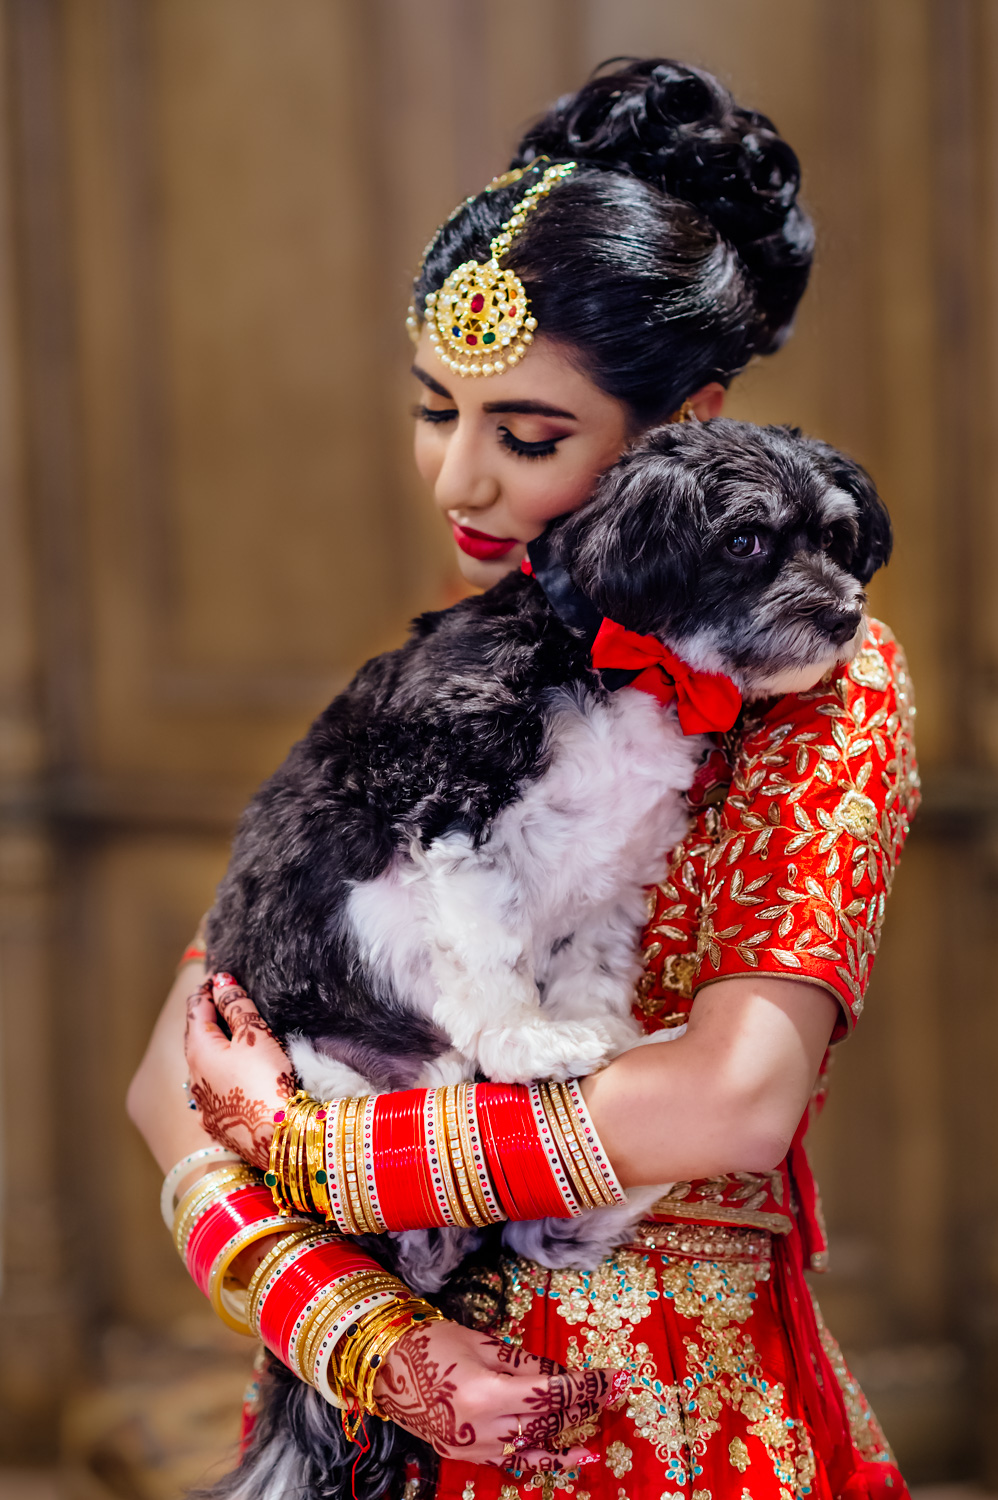 Beautiful Punjabi bride Stockton